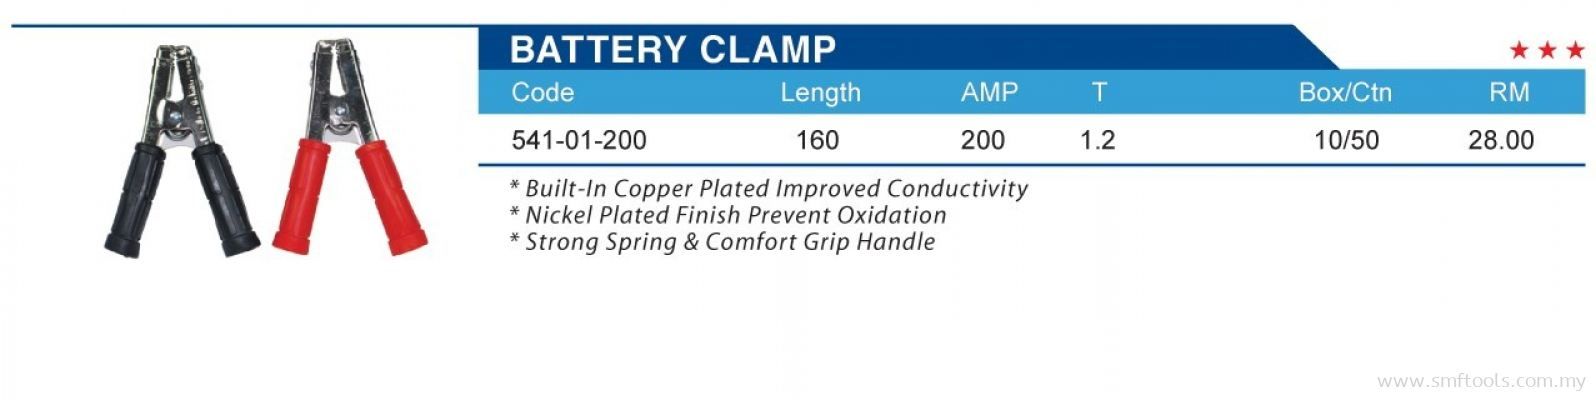 BATTRY CLAMP